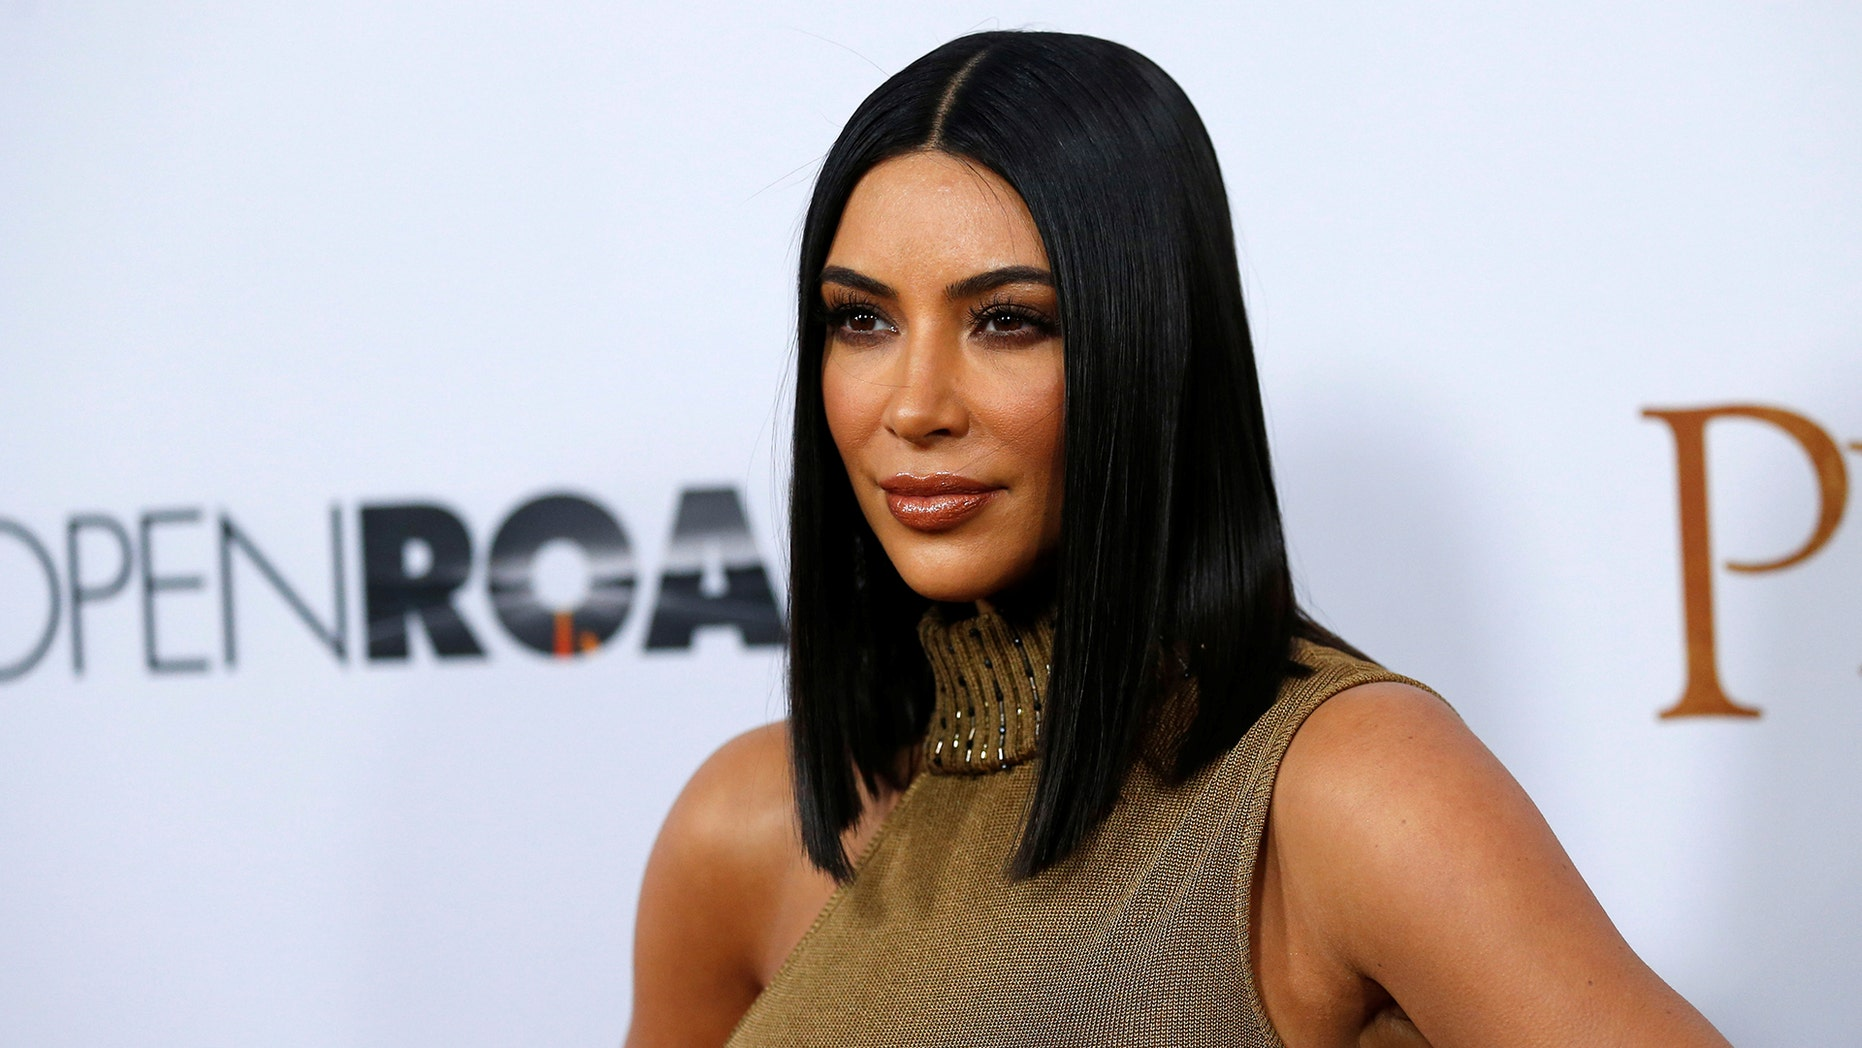 """Television personality Kim Kardashian poses at the premiere of """"The Promise"""" in Los Angeles, California U.S., April 12, 2017."""